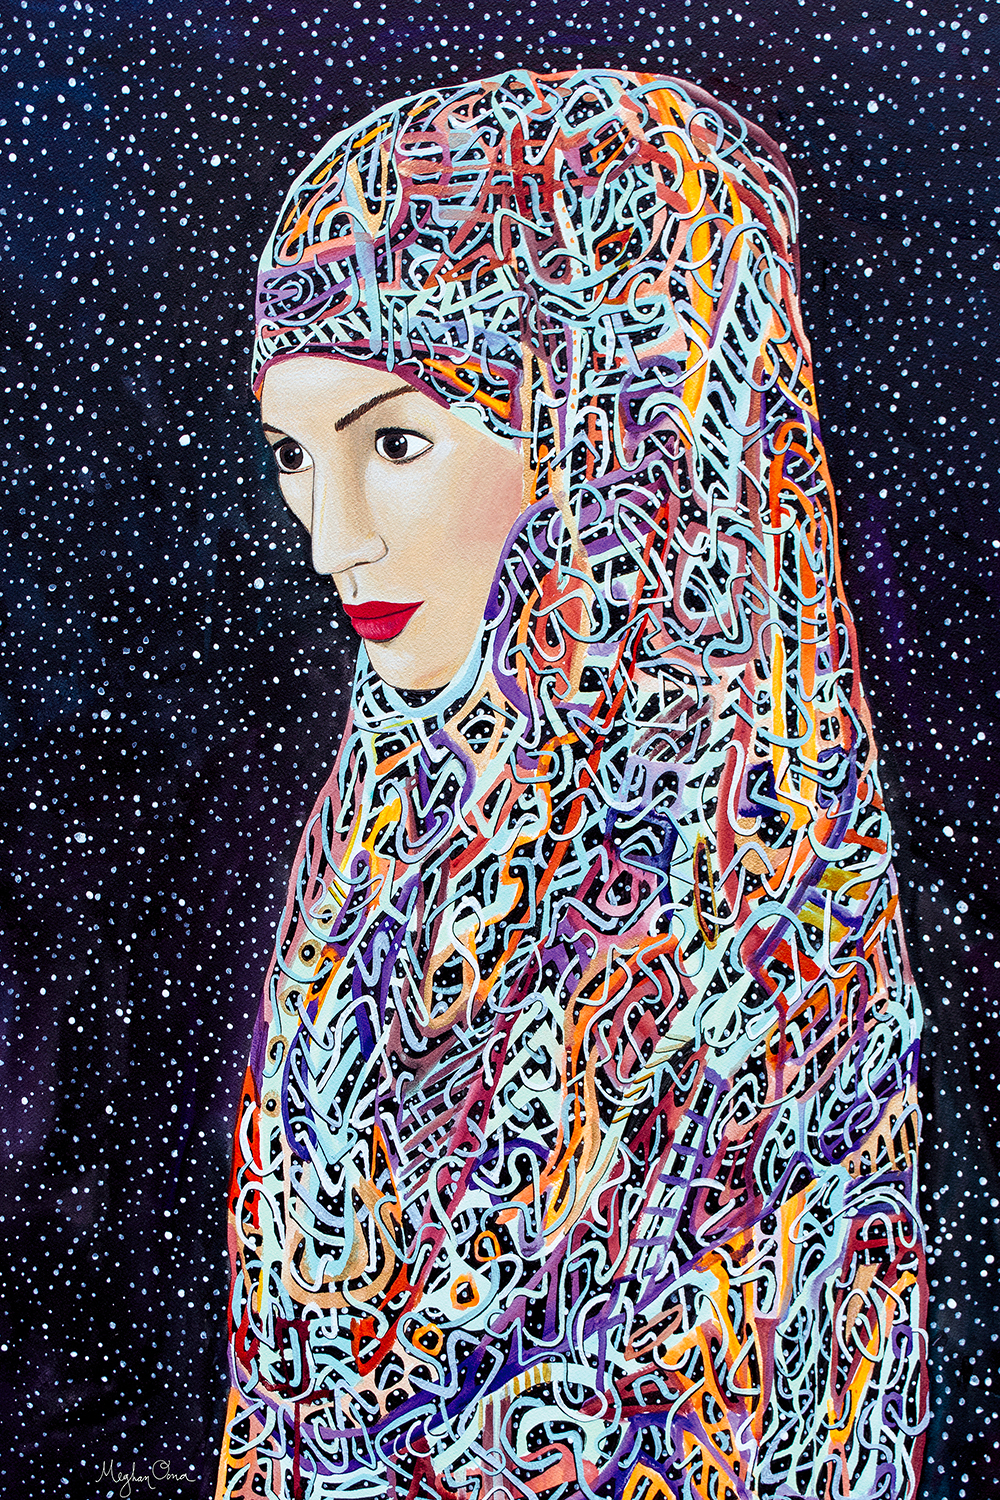 woman in colorful, abstract hijab standing among the stars